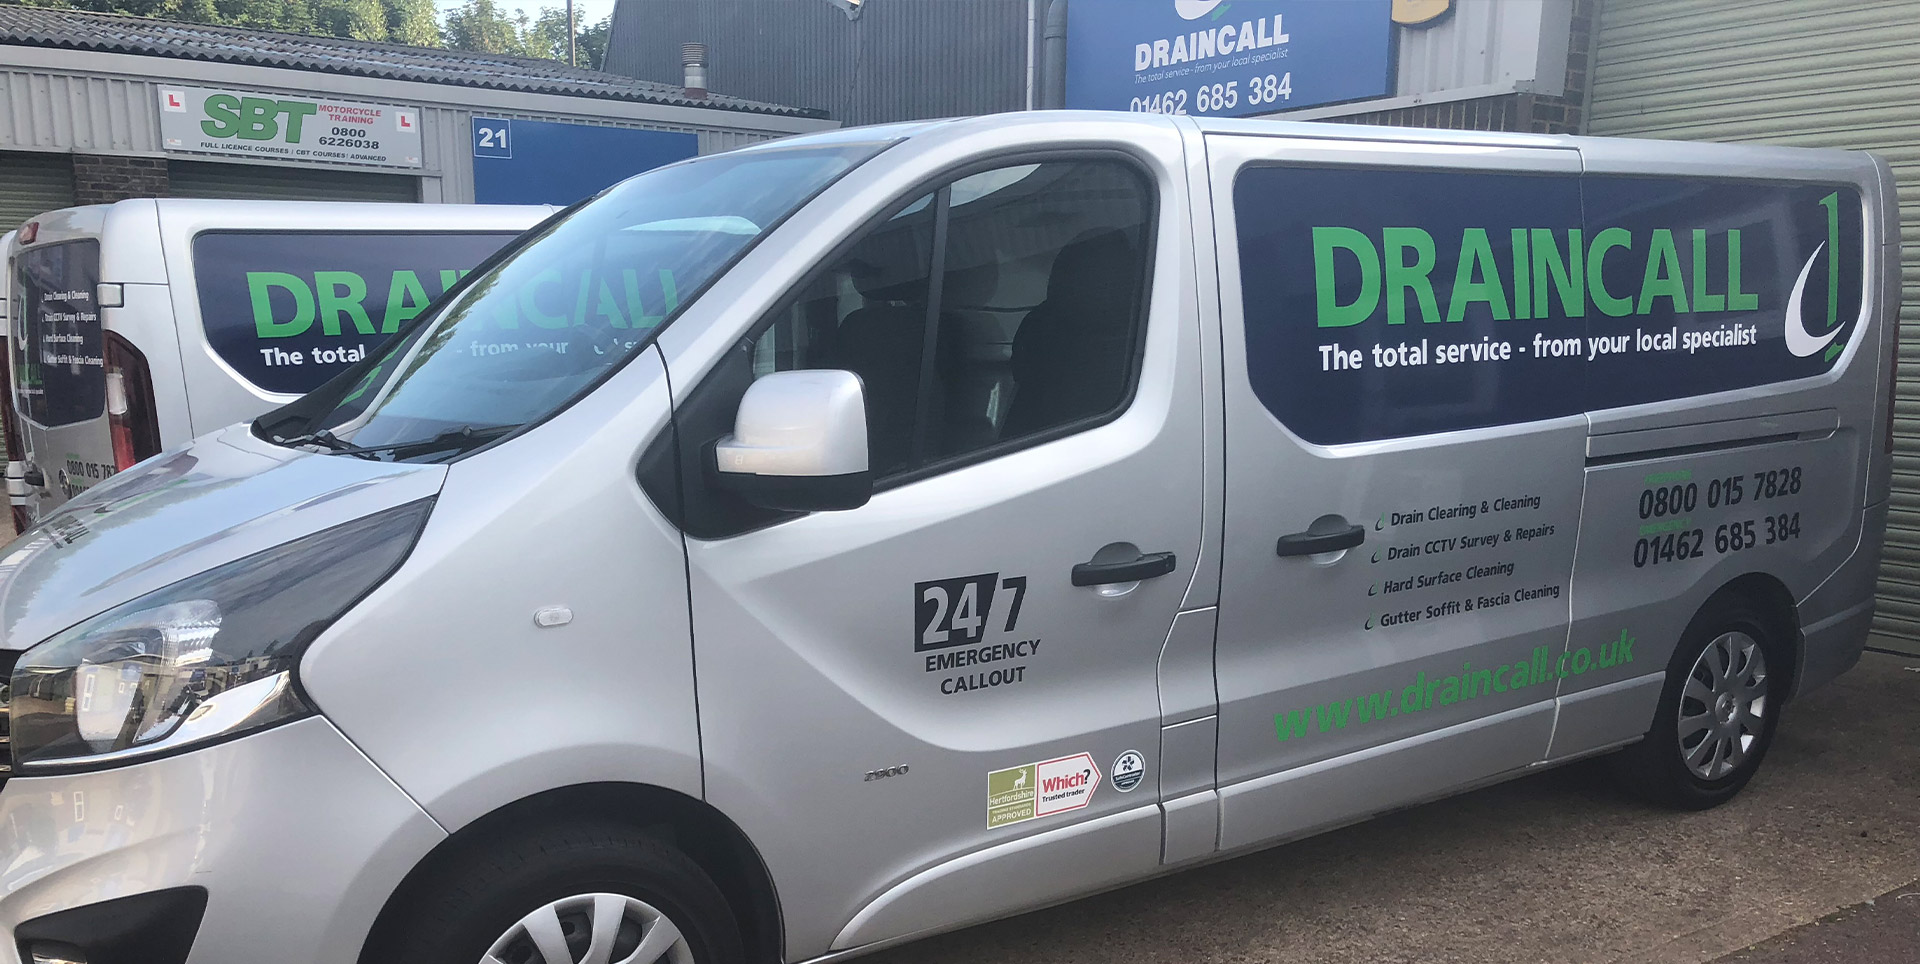 Draincall Services